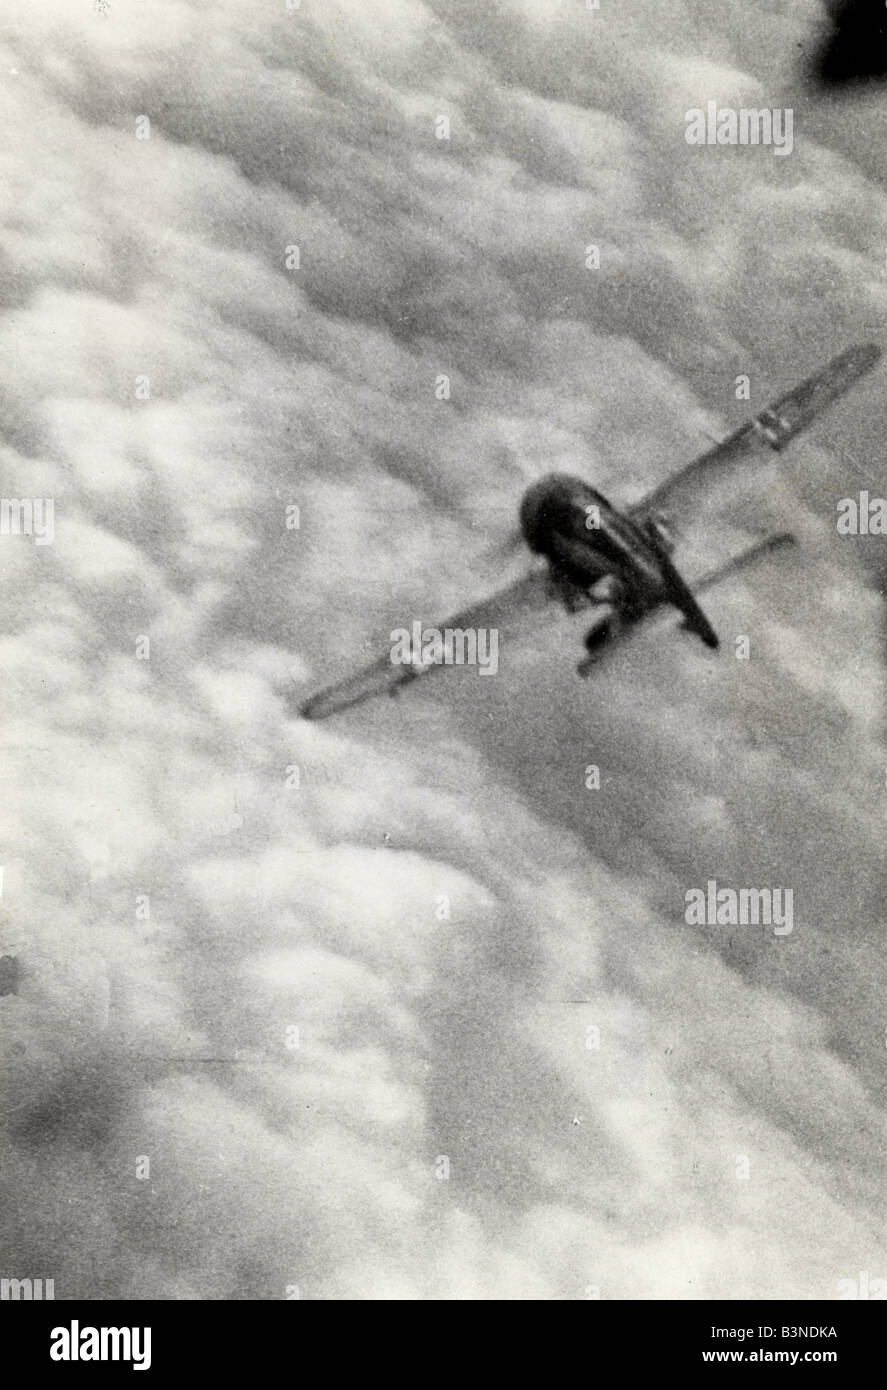 FOCKE-WULF190 - German fighter aircraft caught in the gun camera of an Allied aircraft - Stock Image